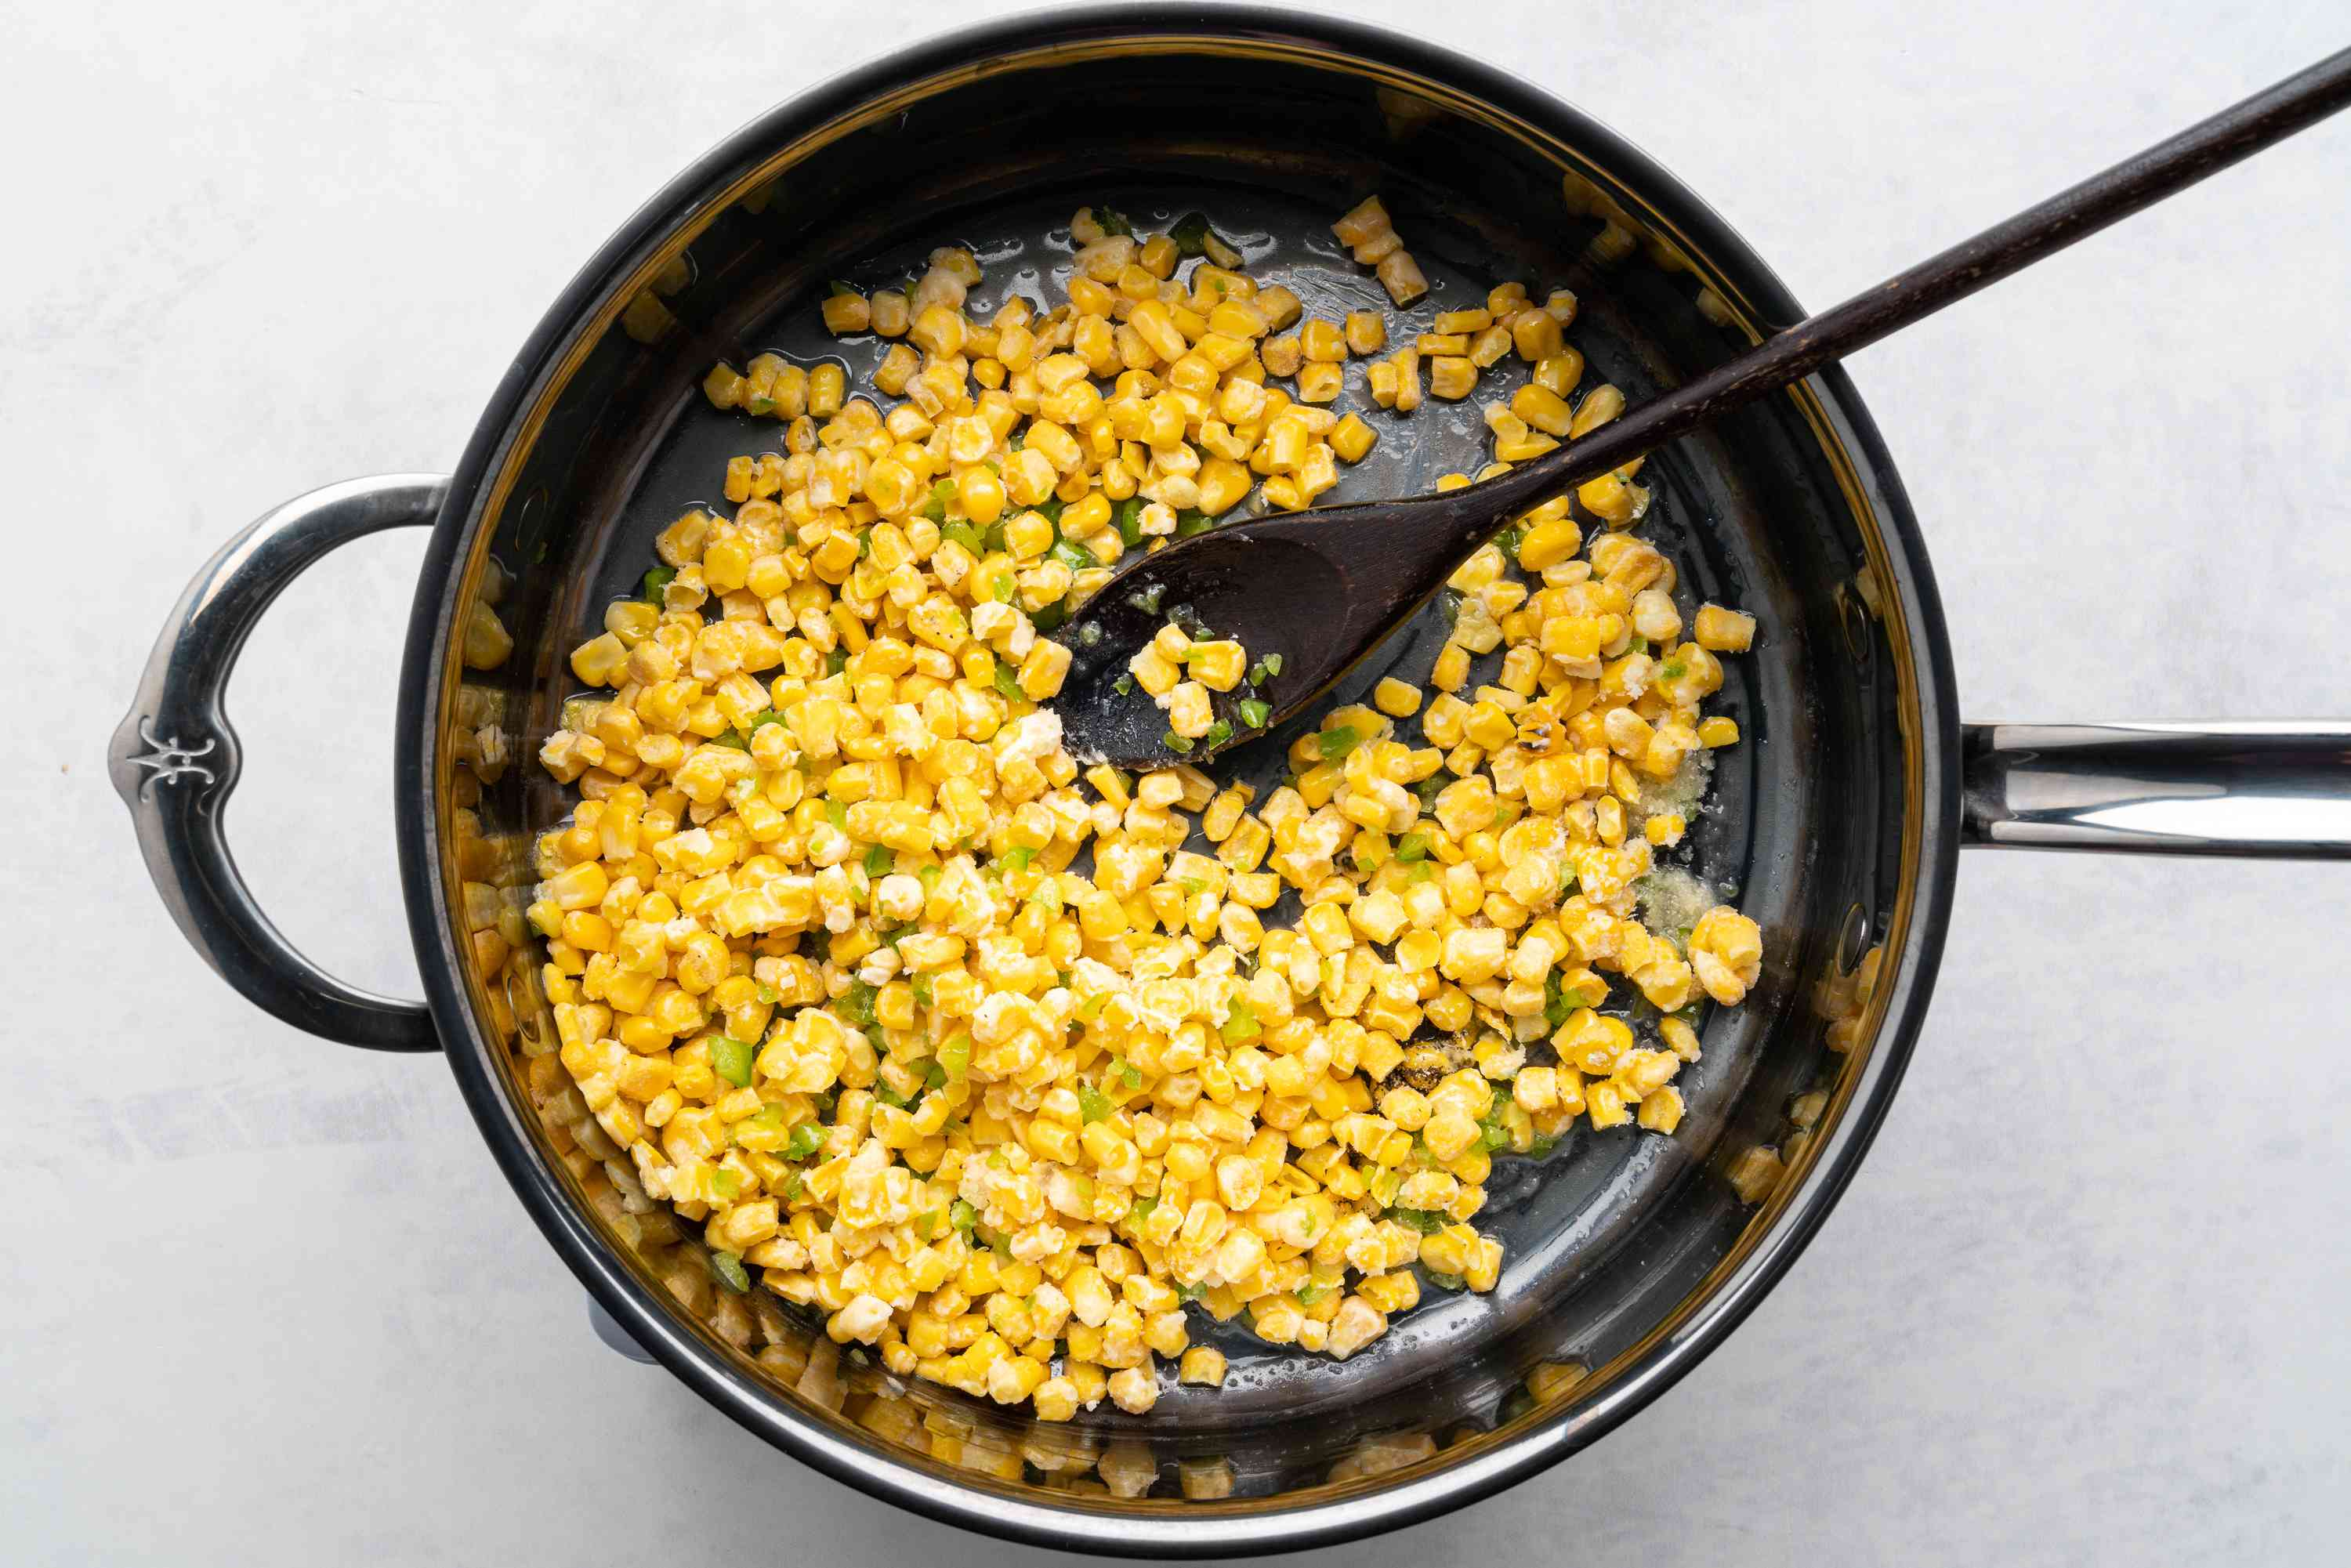 corn mixture cooking in a skillet